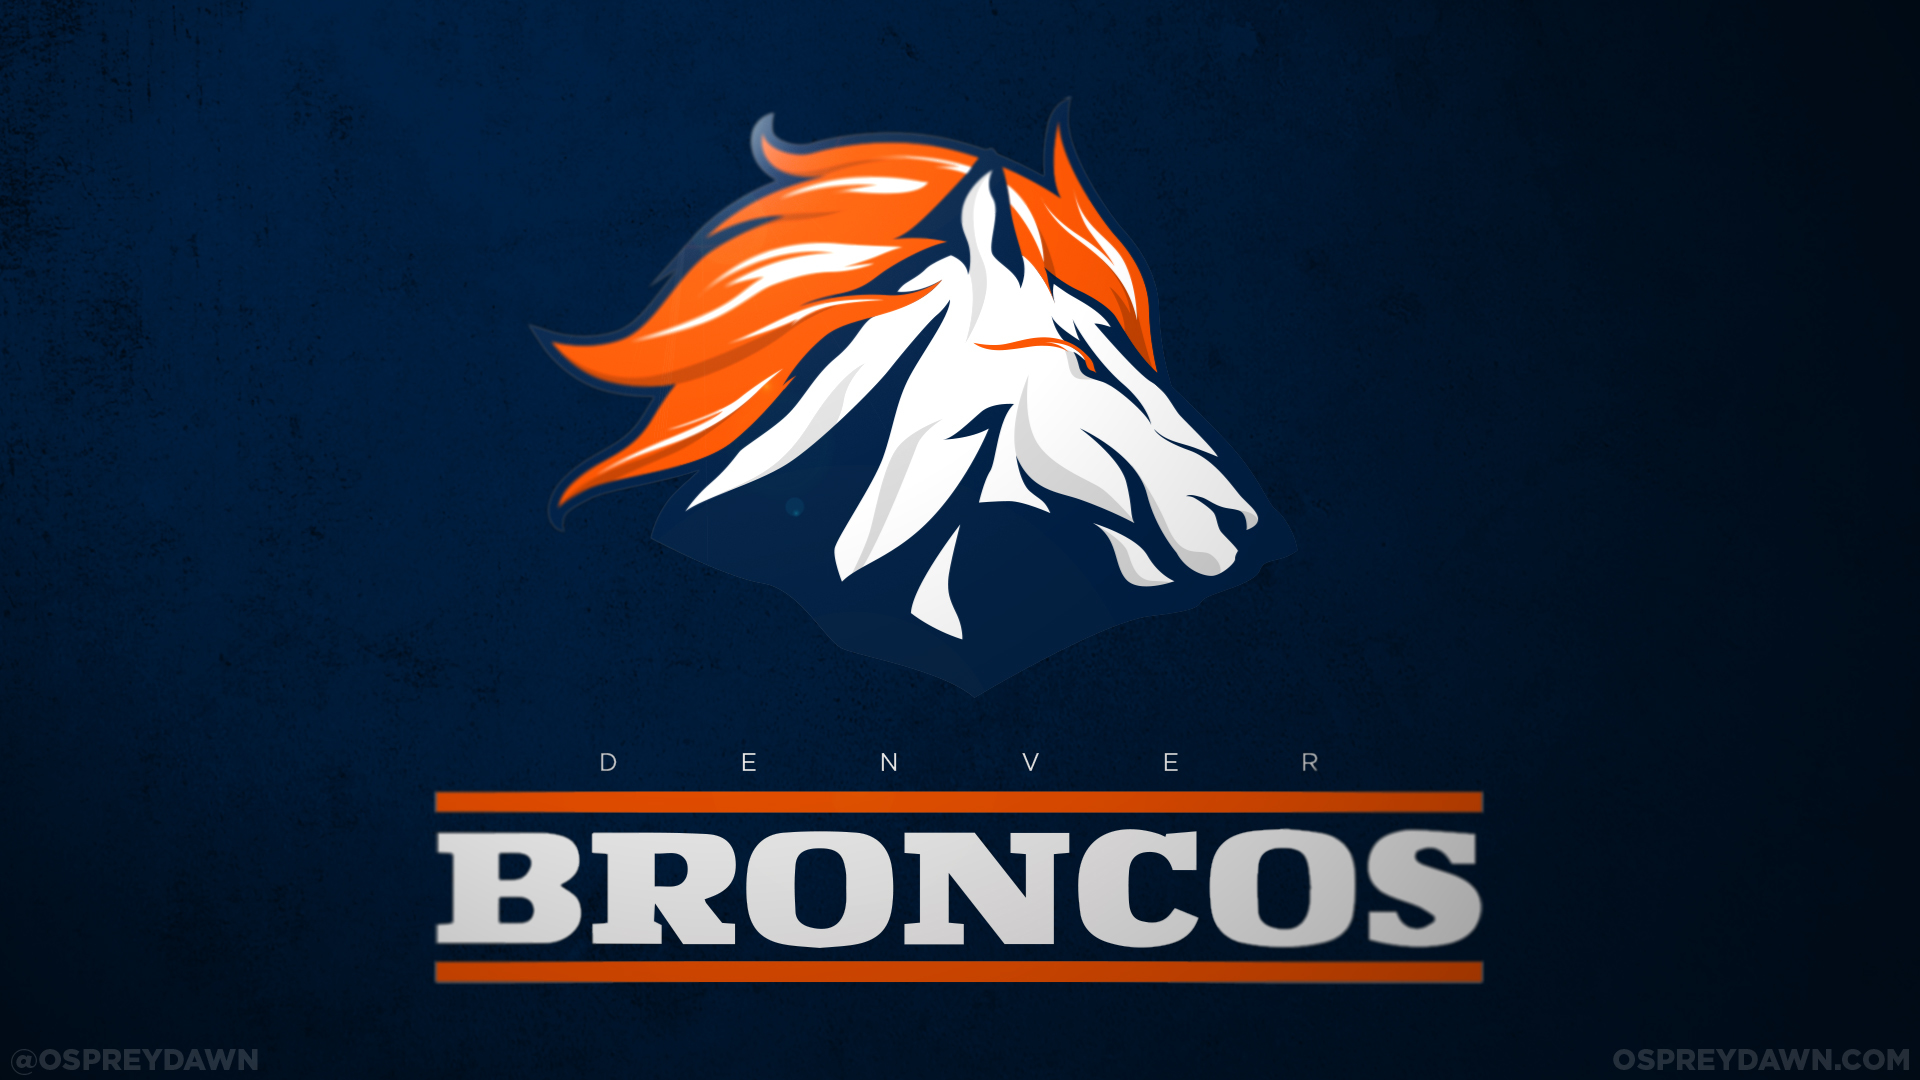 Denver Broncos Wallpaper For Android HD 1920x1080